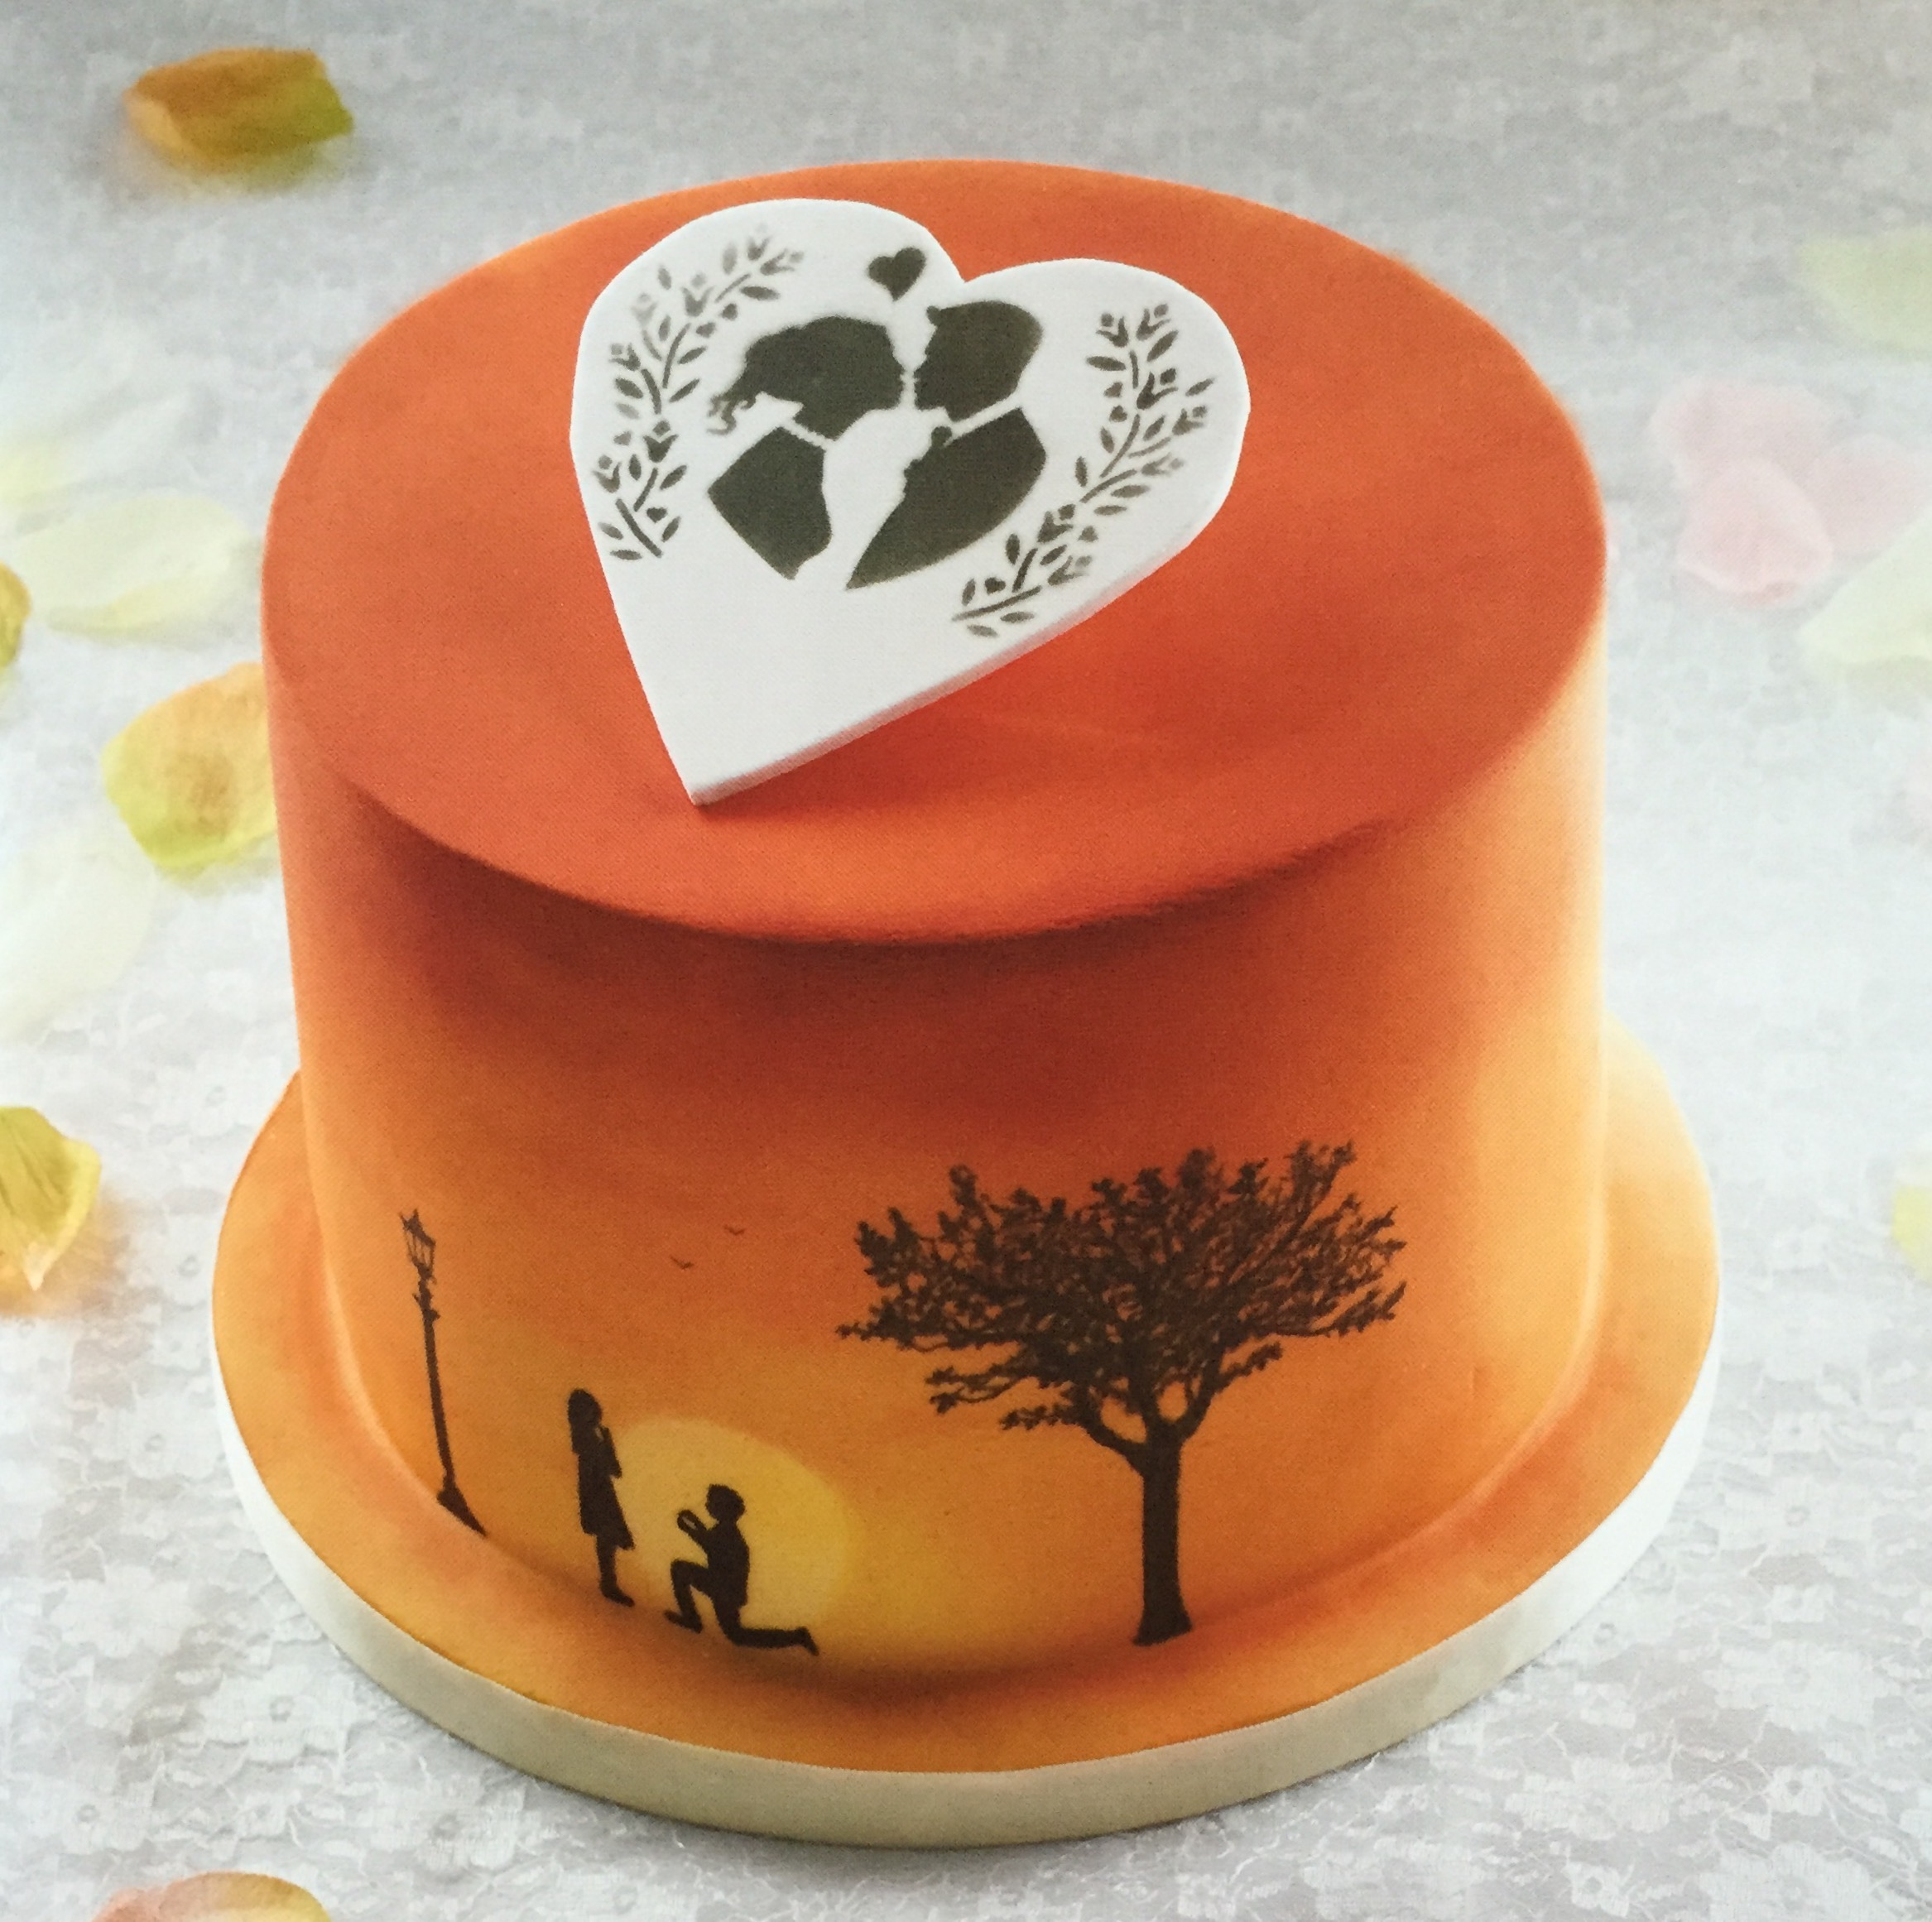 Airbrush sunset cake.jpeg